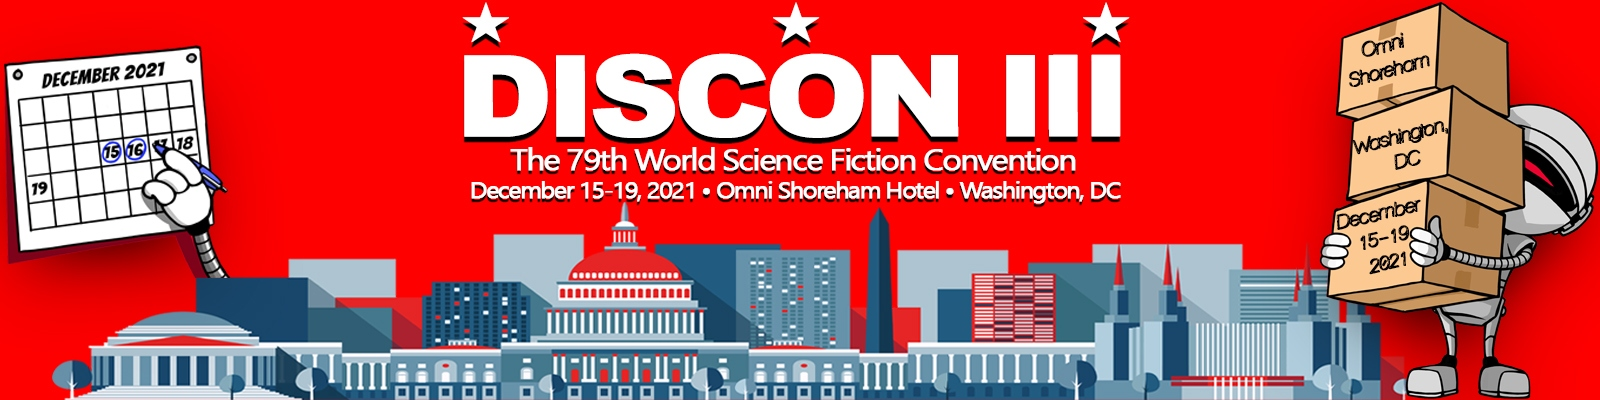 DisCon III, World Science Fiction Convention